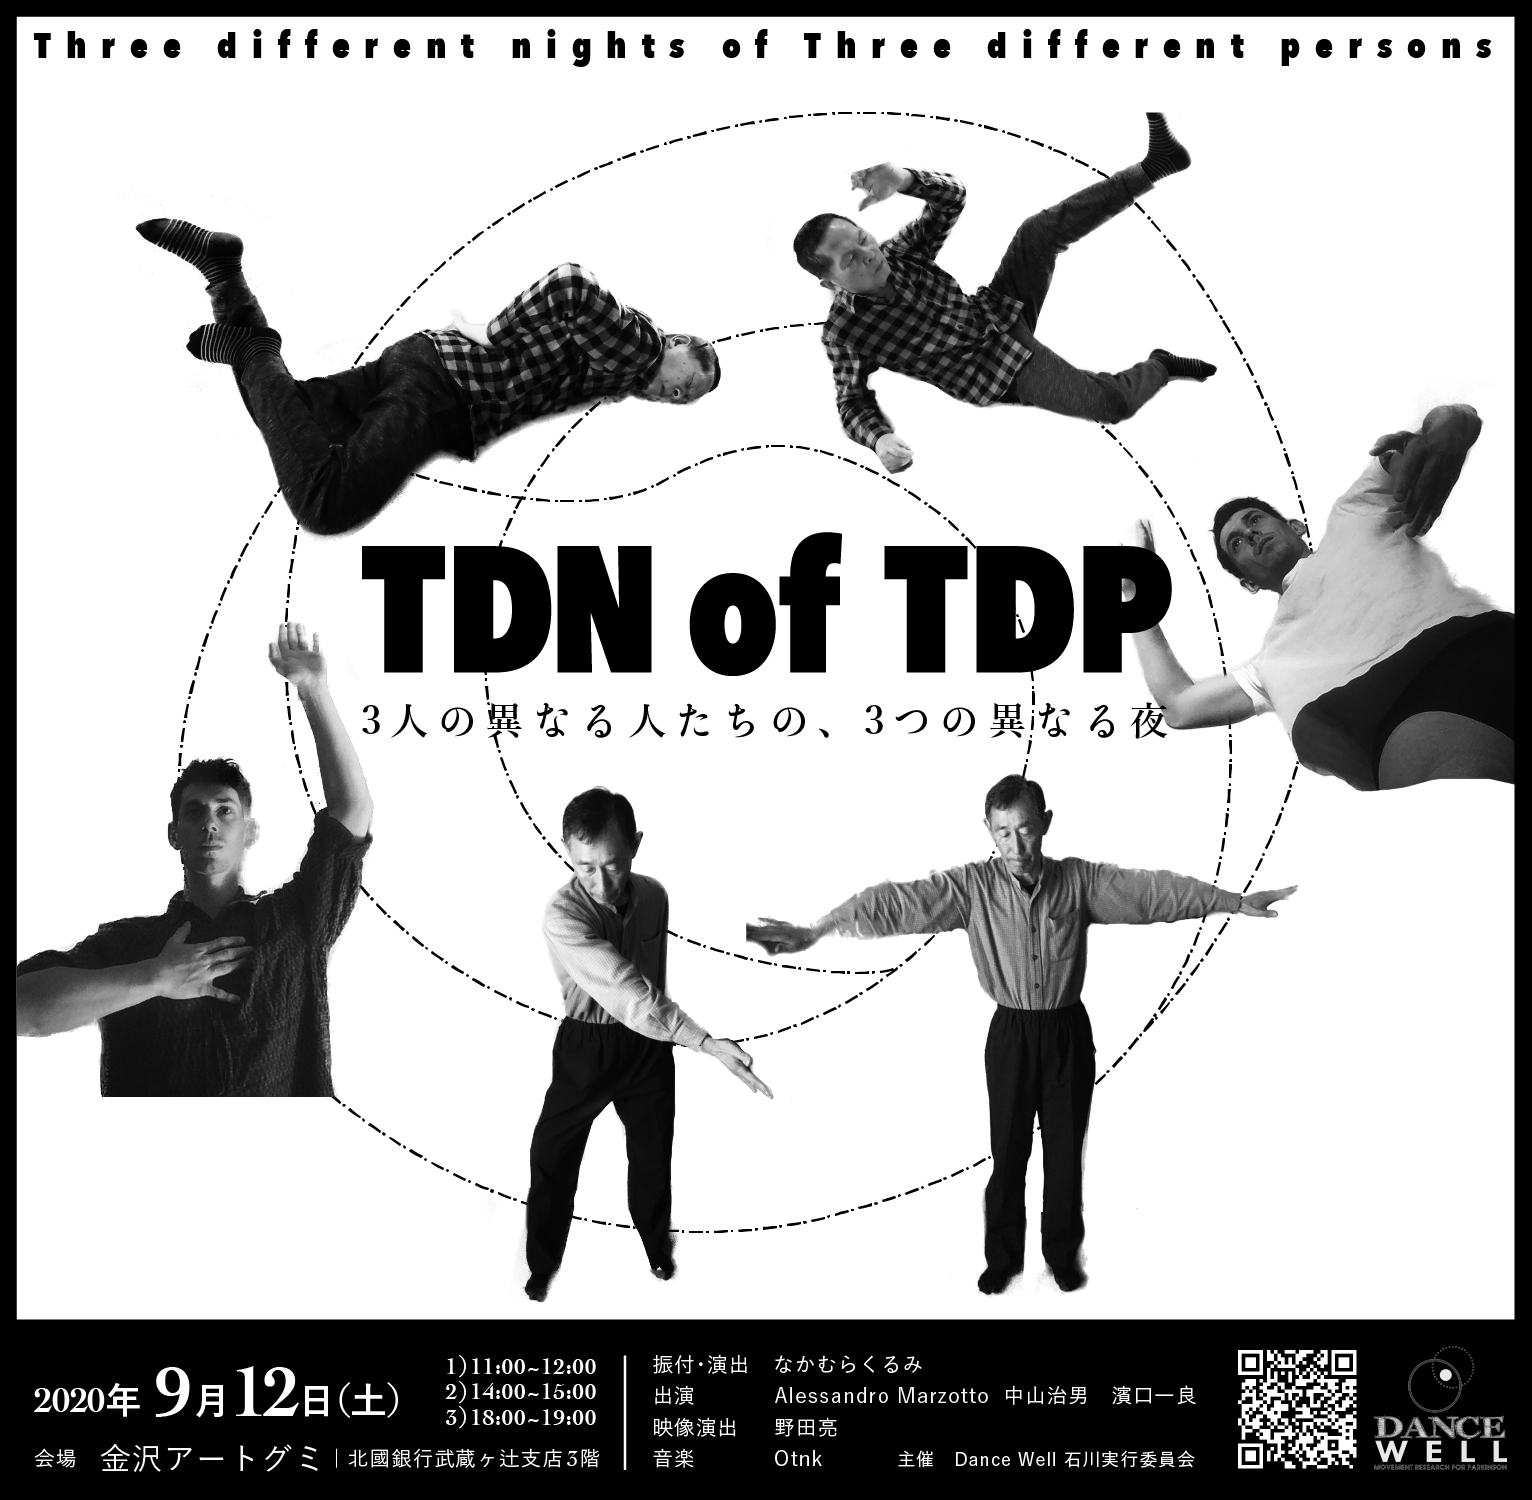 終了|9/12  TDN of TDP (three different nights of three different persons)〜3人の異なる人たちの、3つの異なる夜